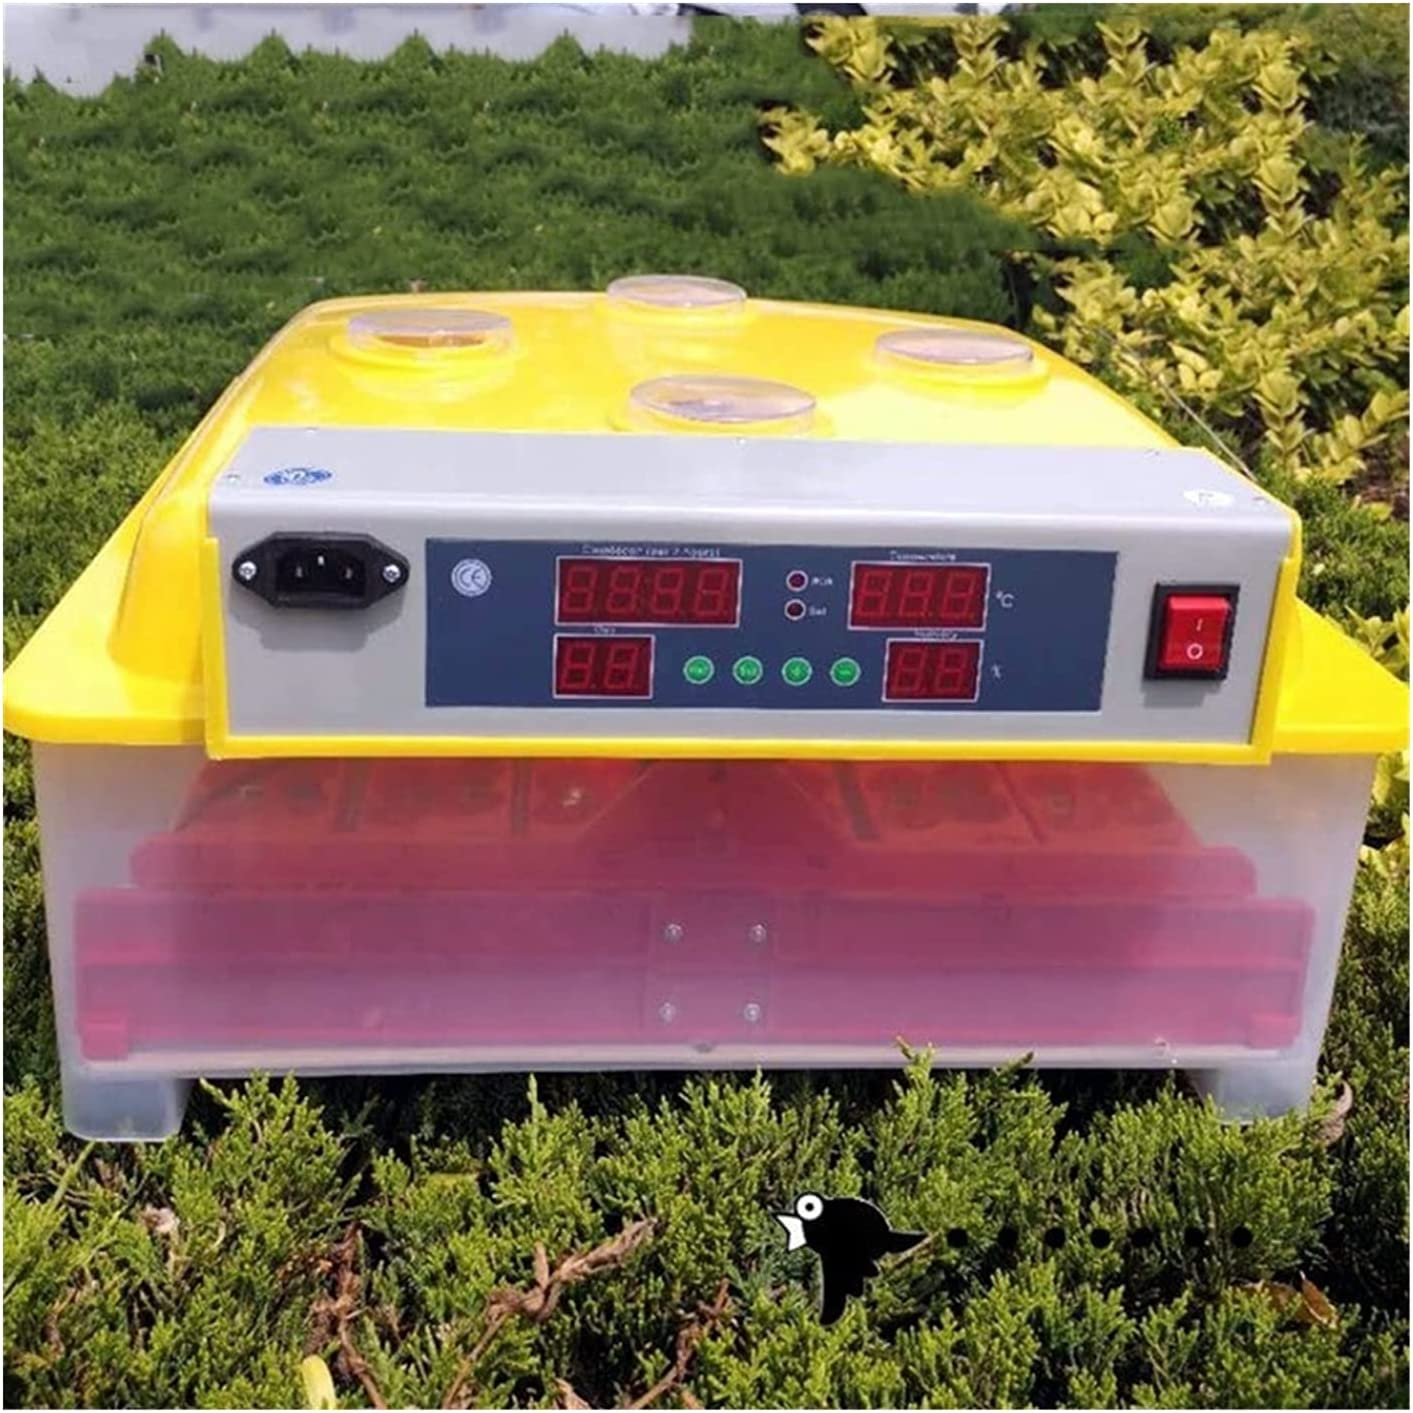 HUACHEN-LS Automatic Egg Incubator Household 36 Small SALENEW very Financial sales sale popular